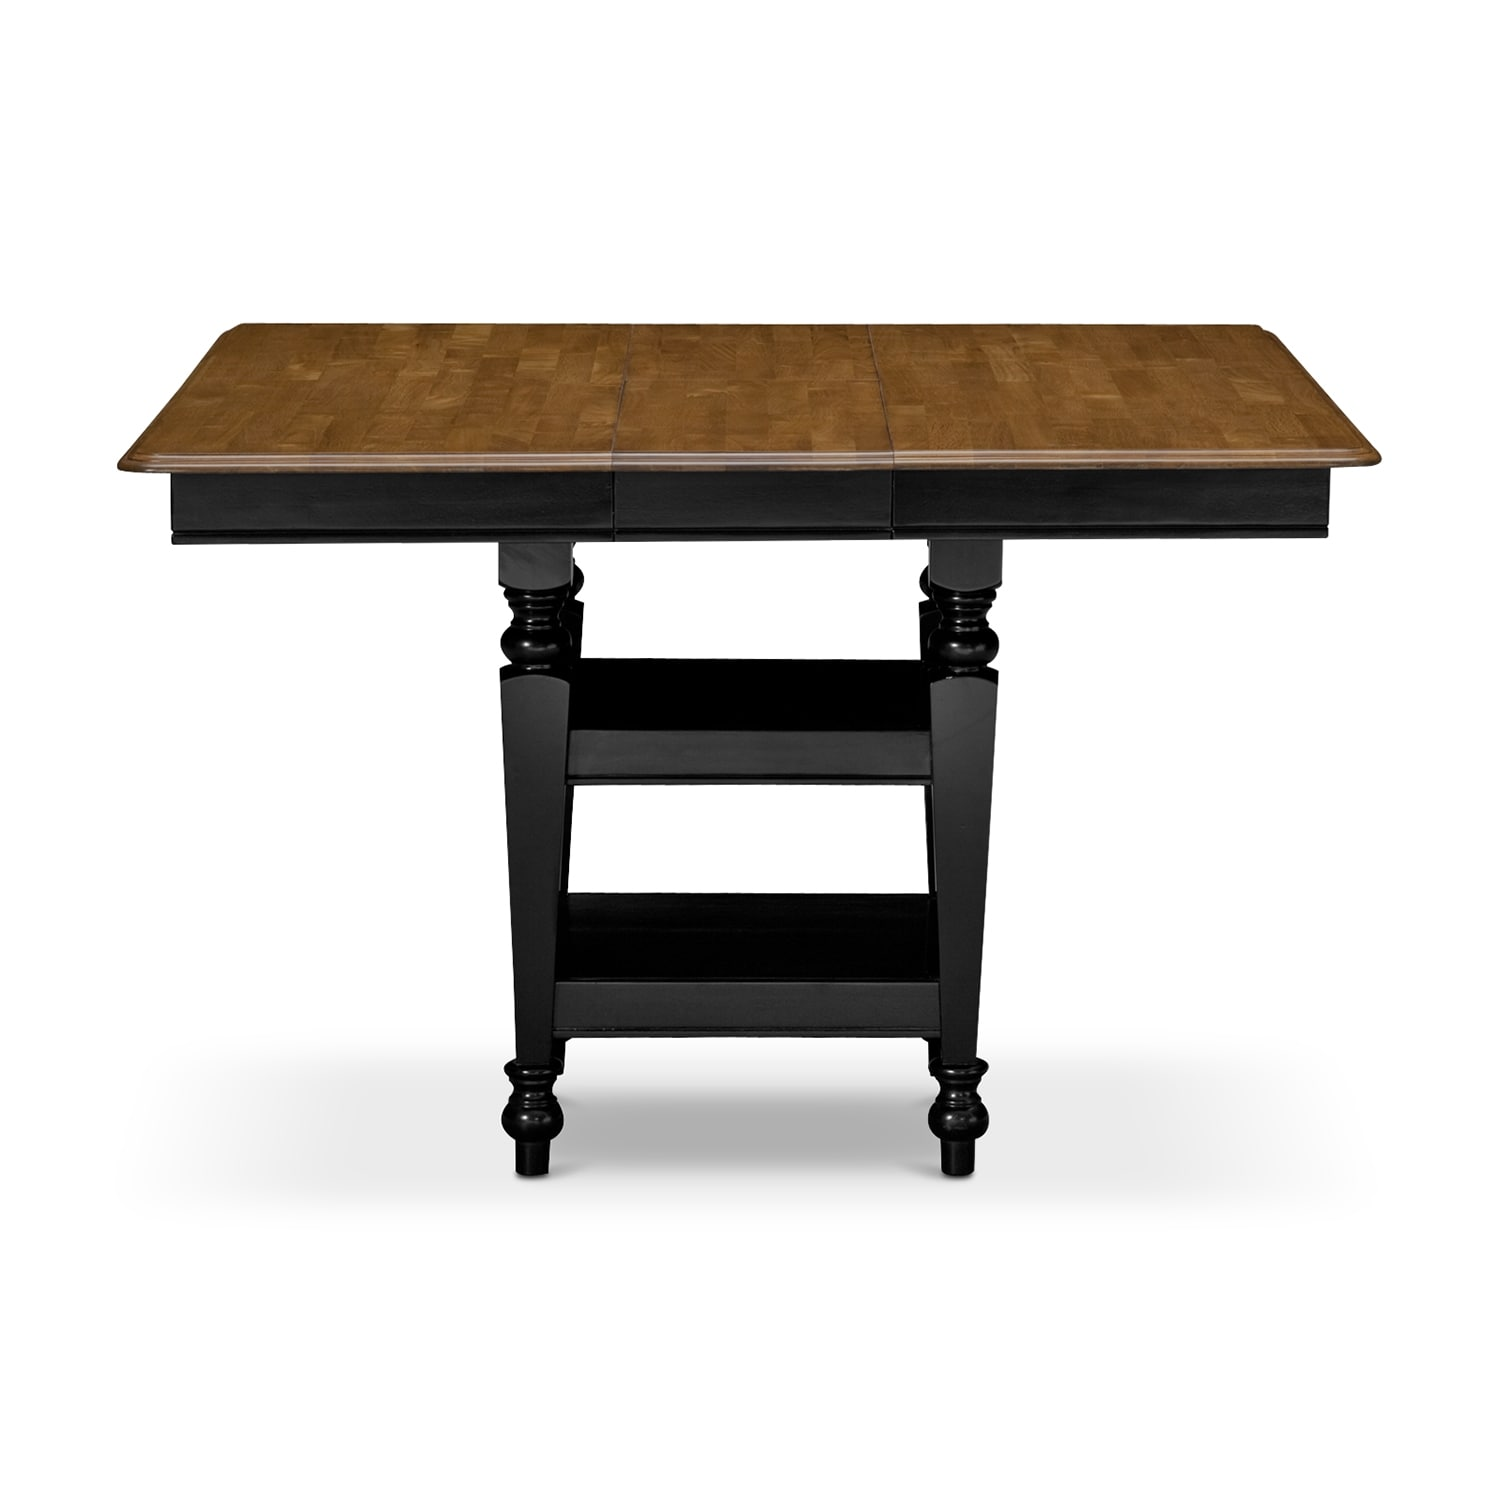 signature furniture chesapeake dining room counter height table